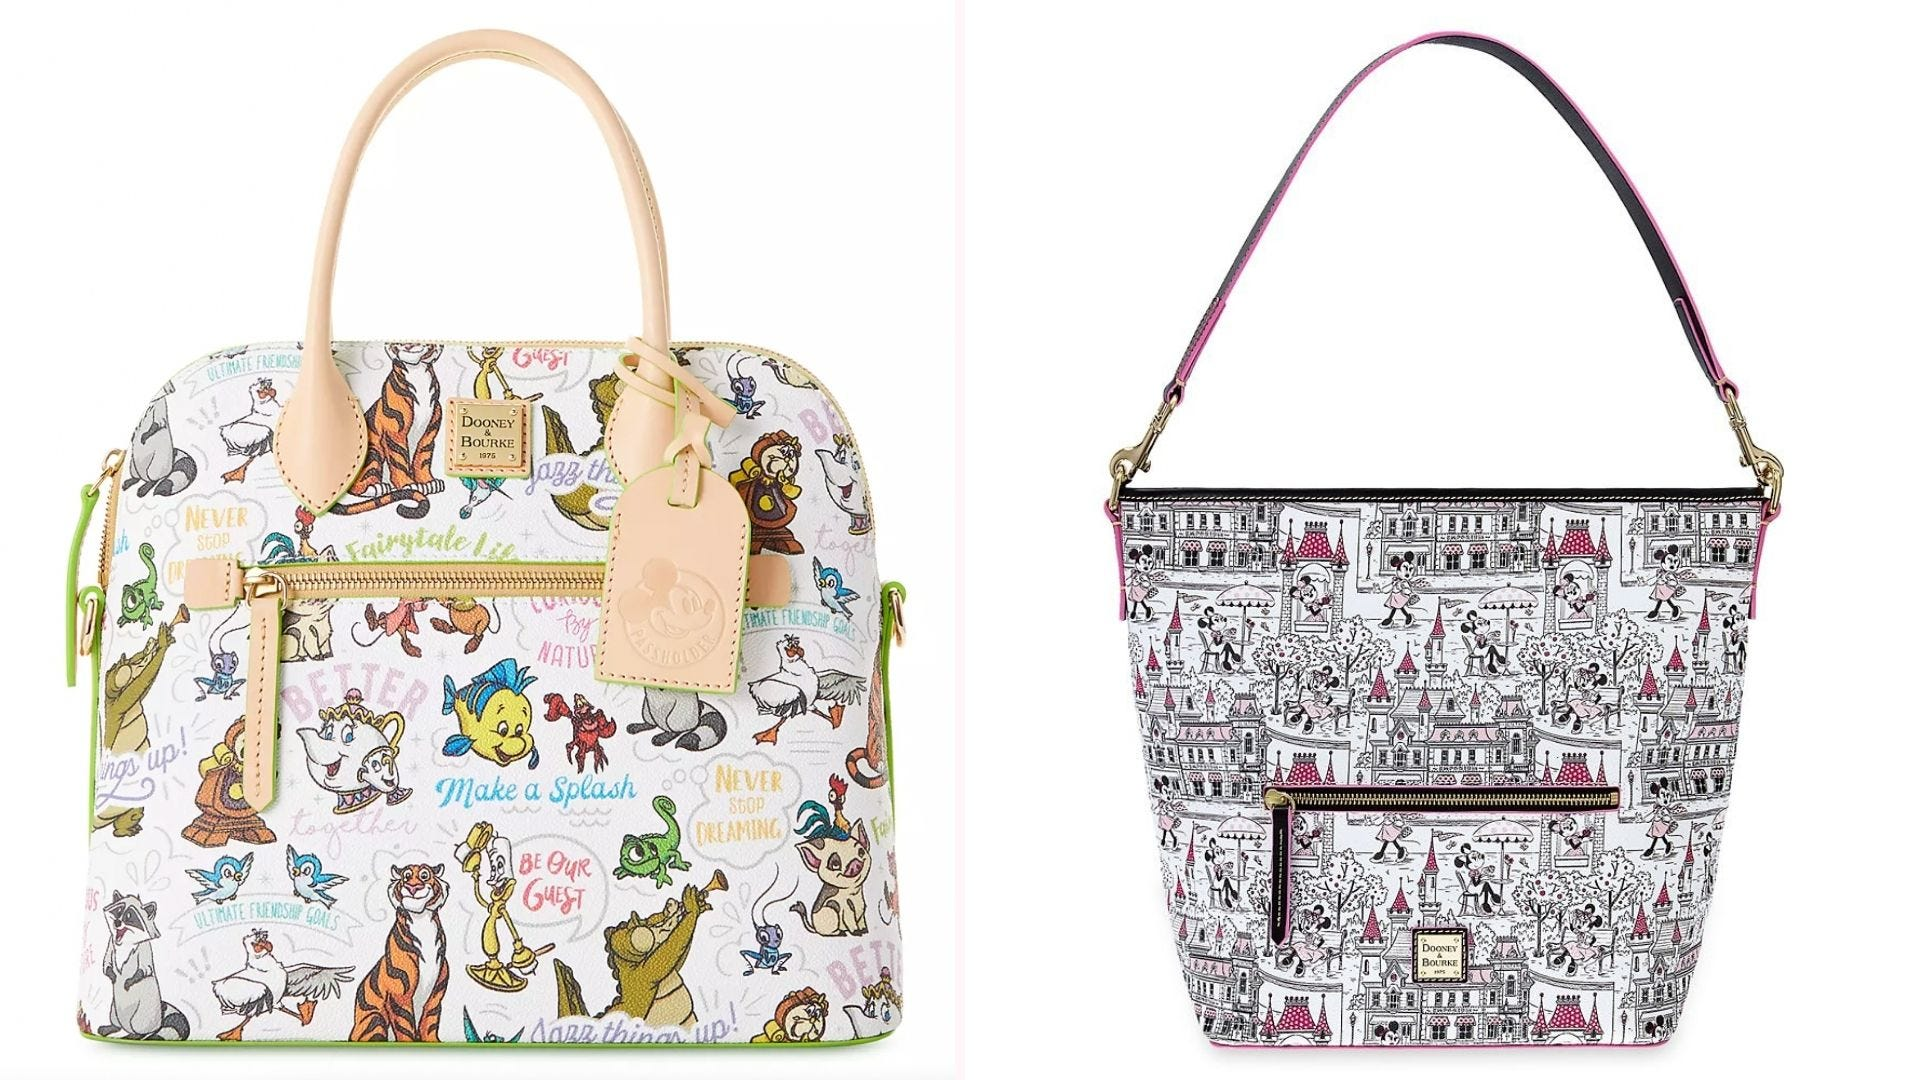 A purse printed with Disney characters; a purse with black and white Disney park cartoons